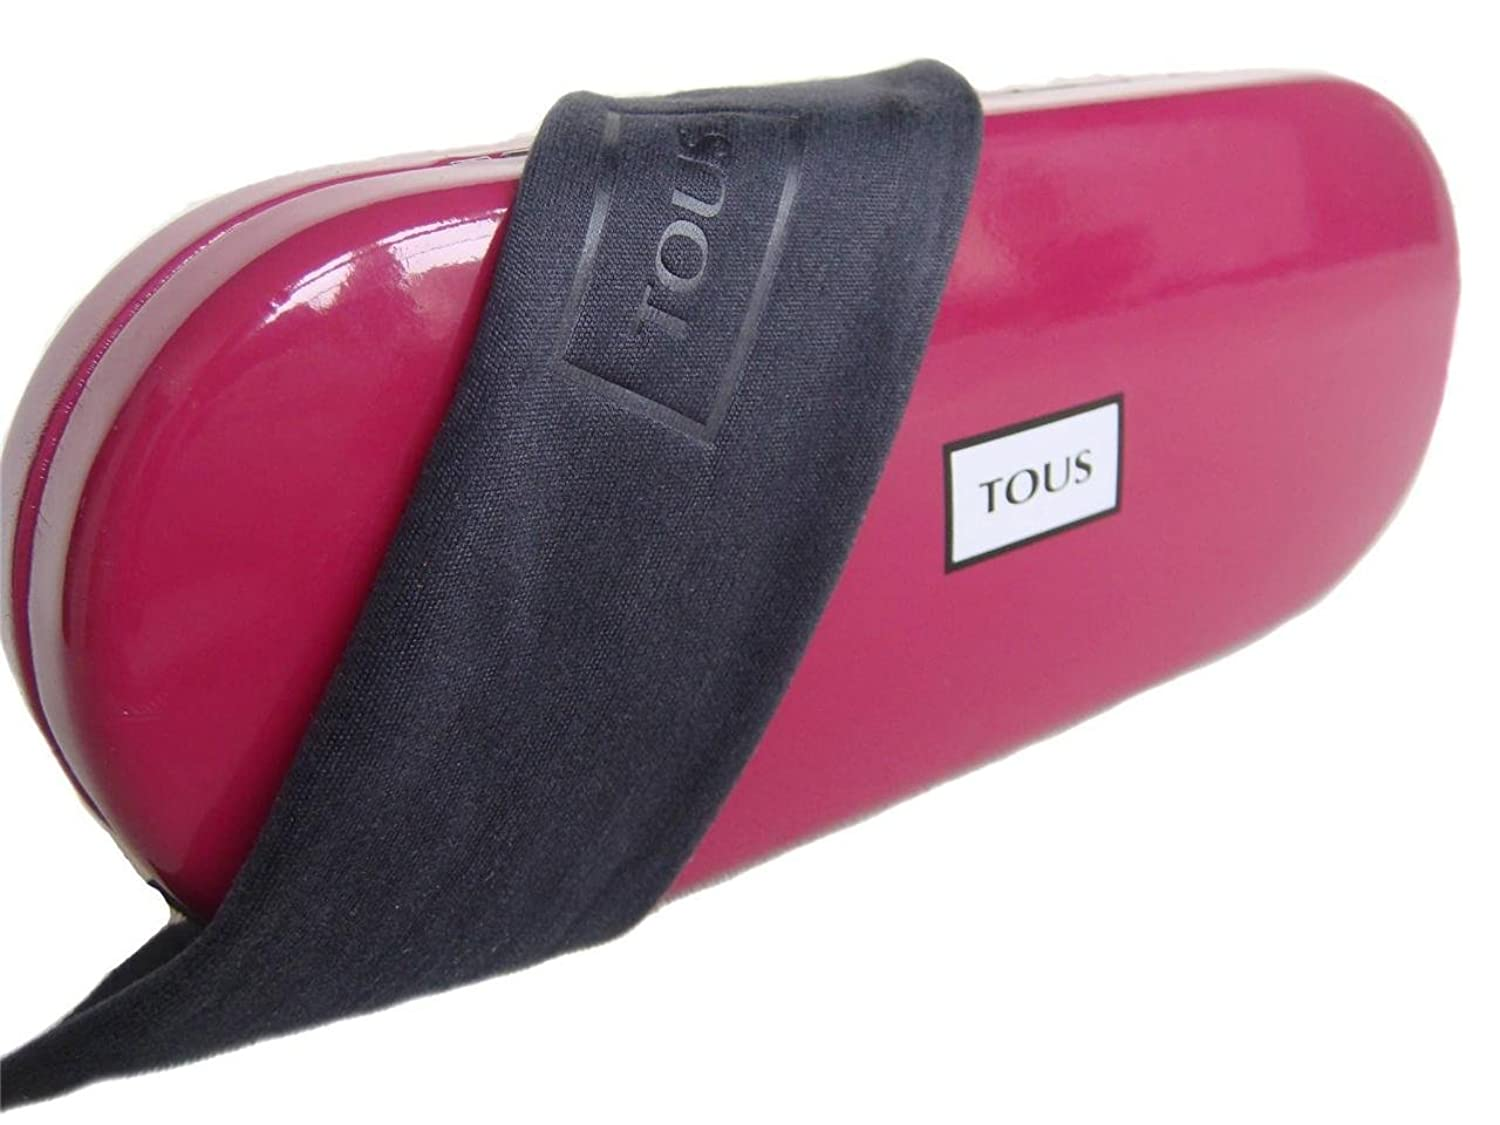 TOUS Spectacles Glasses Case + Lense Cloth (Cherry) Ex Display